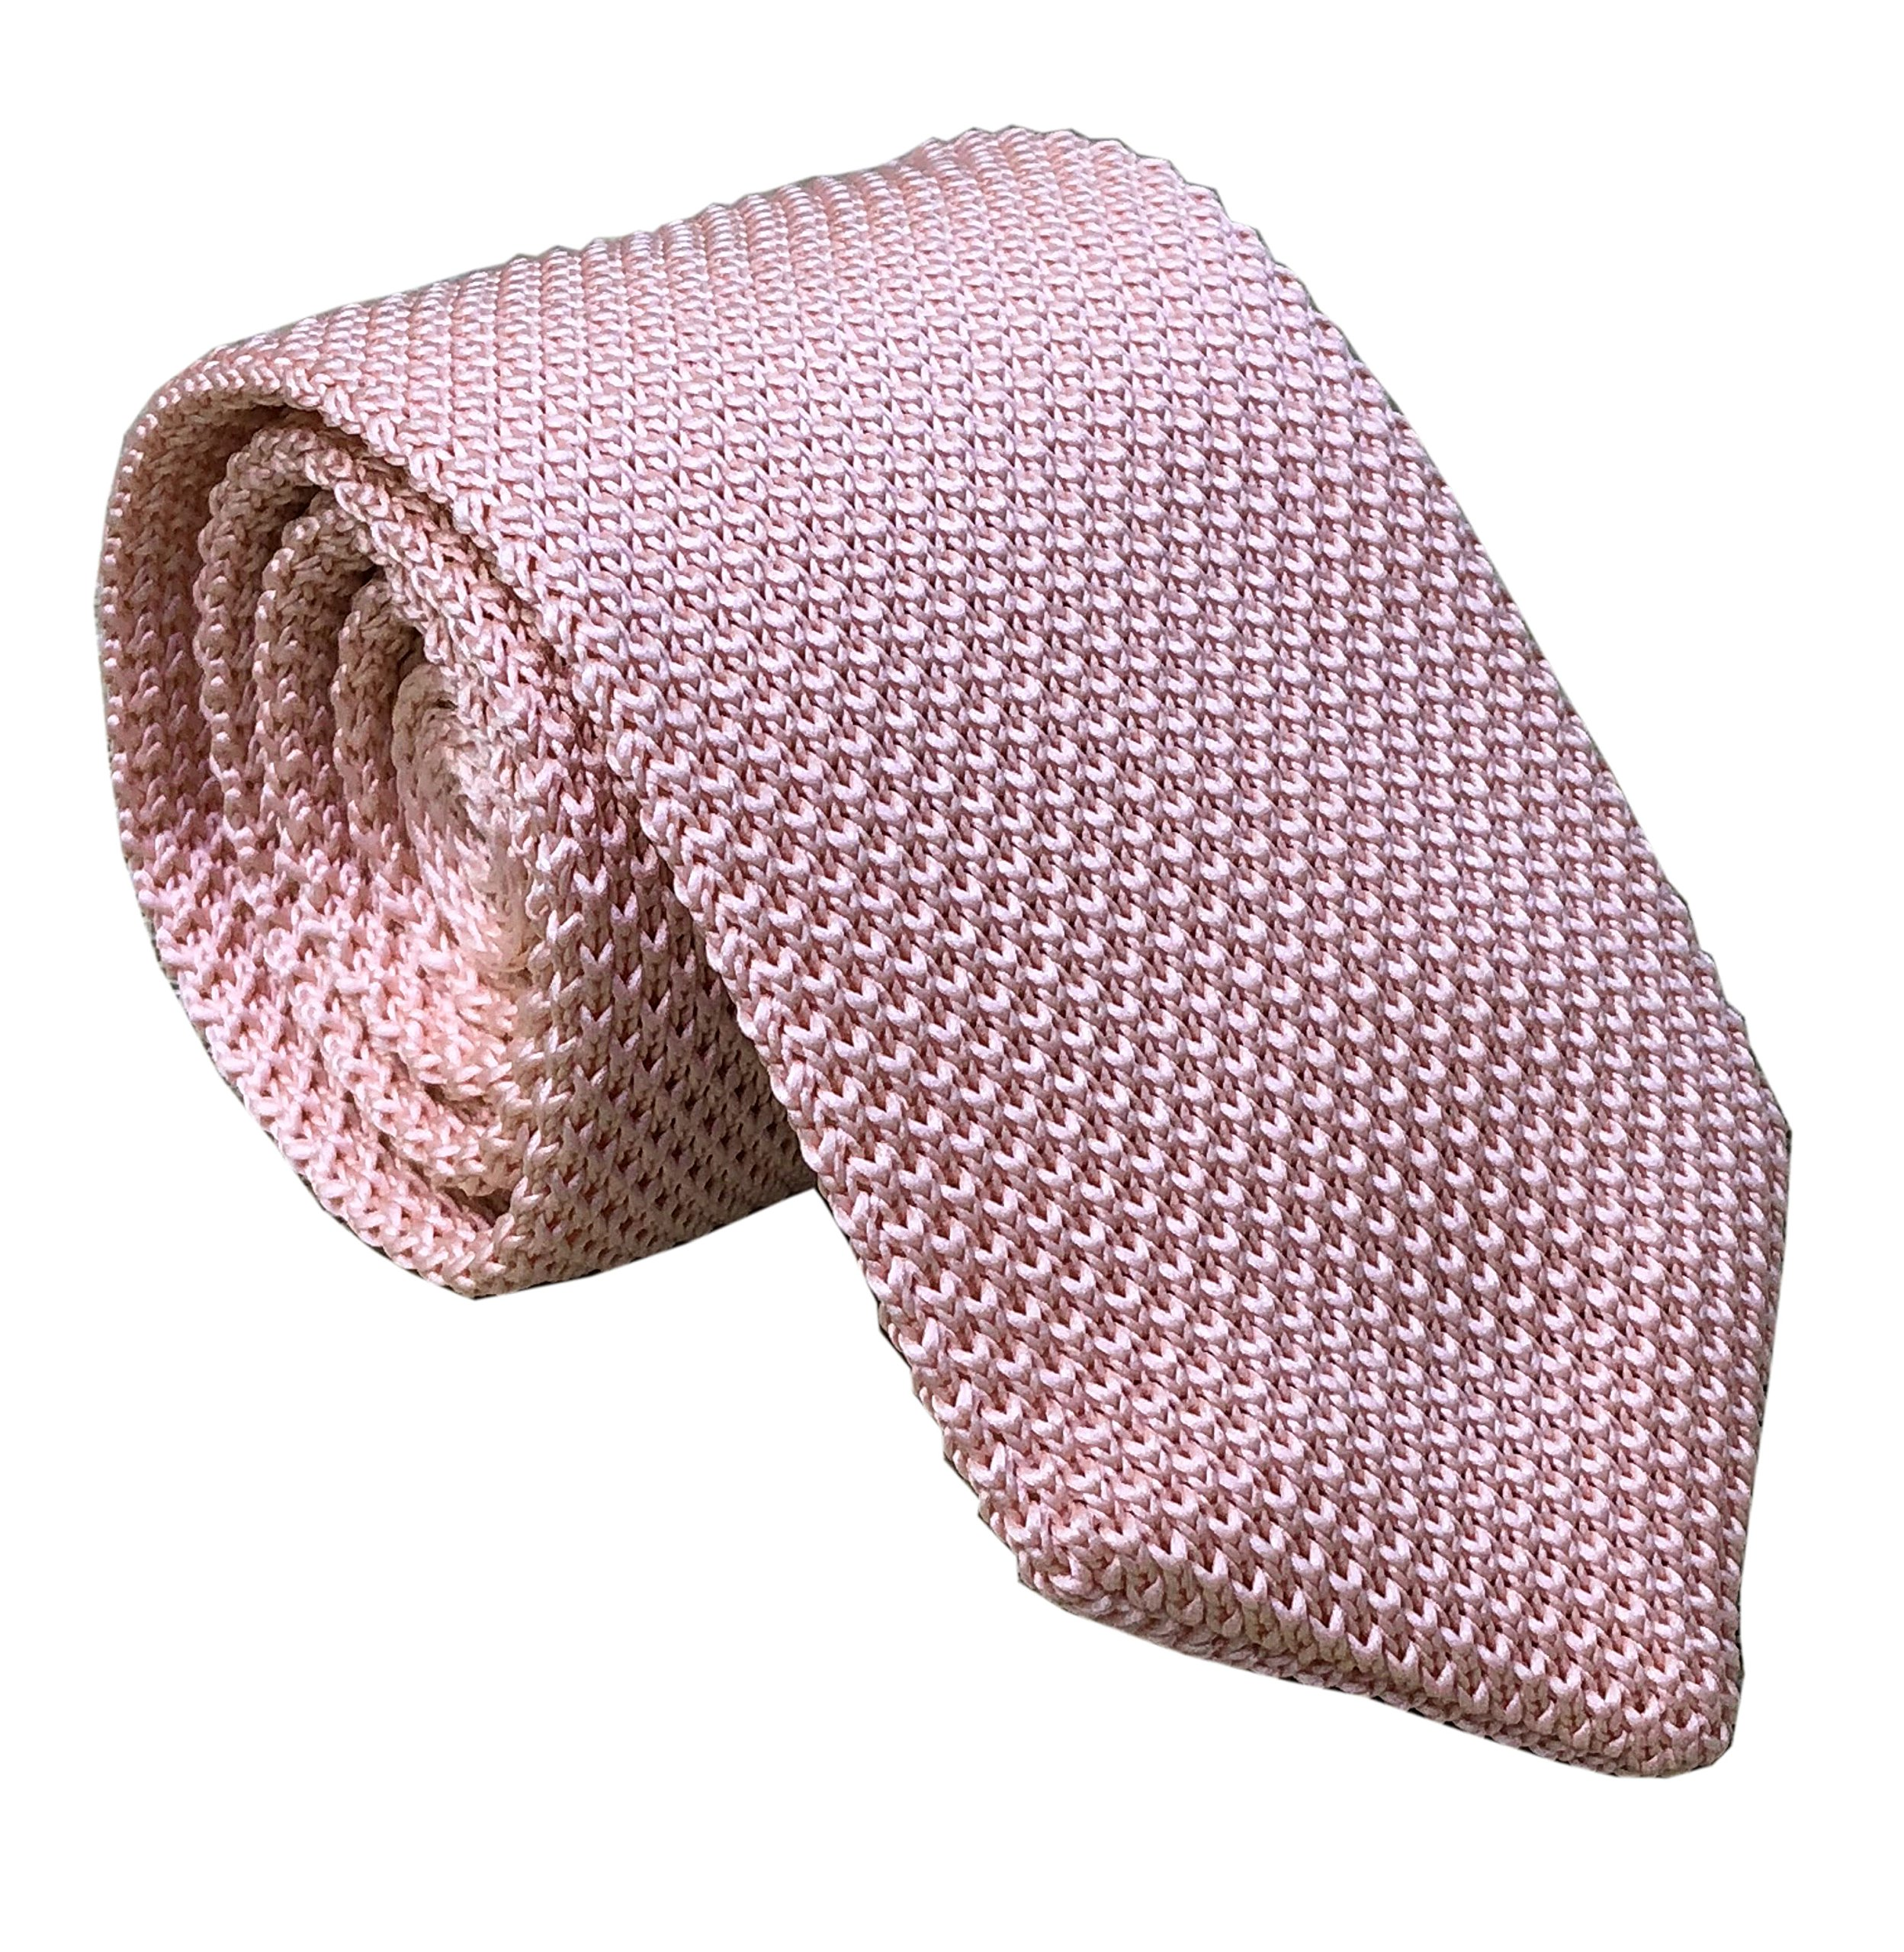 Summer Pink Tie Woven Casual Preppy Stylish Necktie for Tall and Big Men Boys